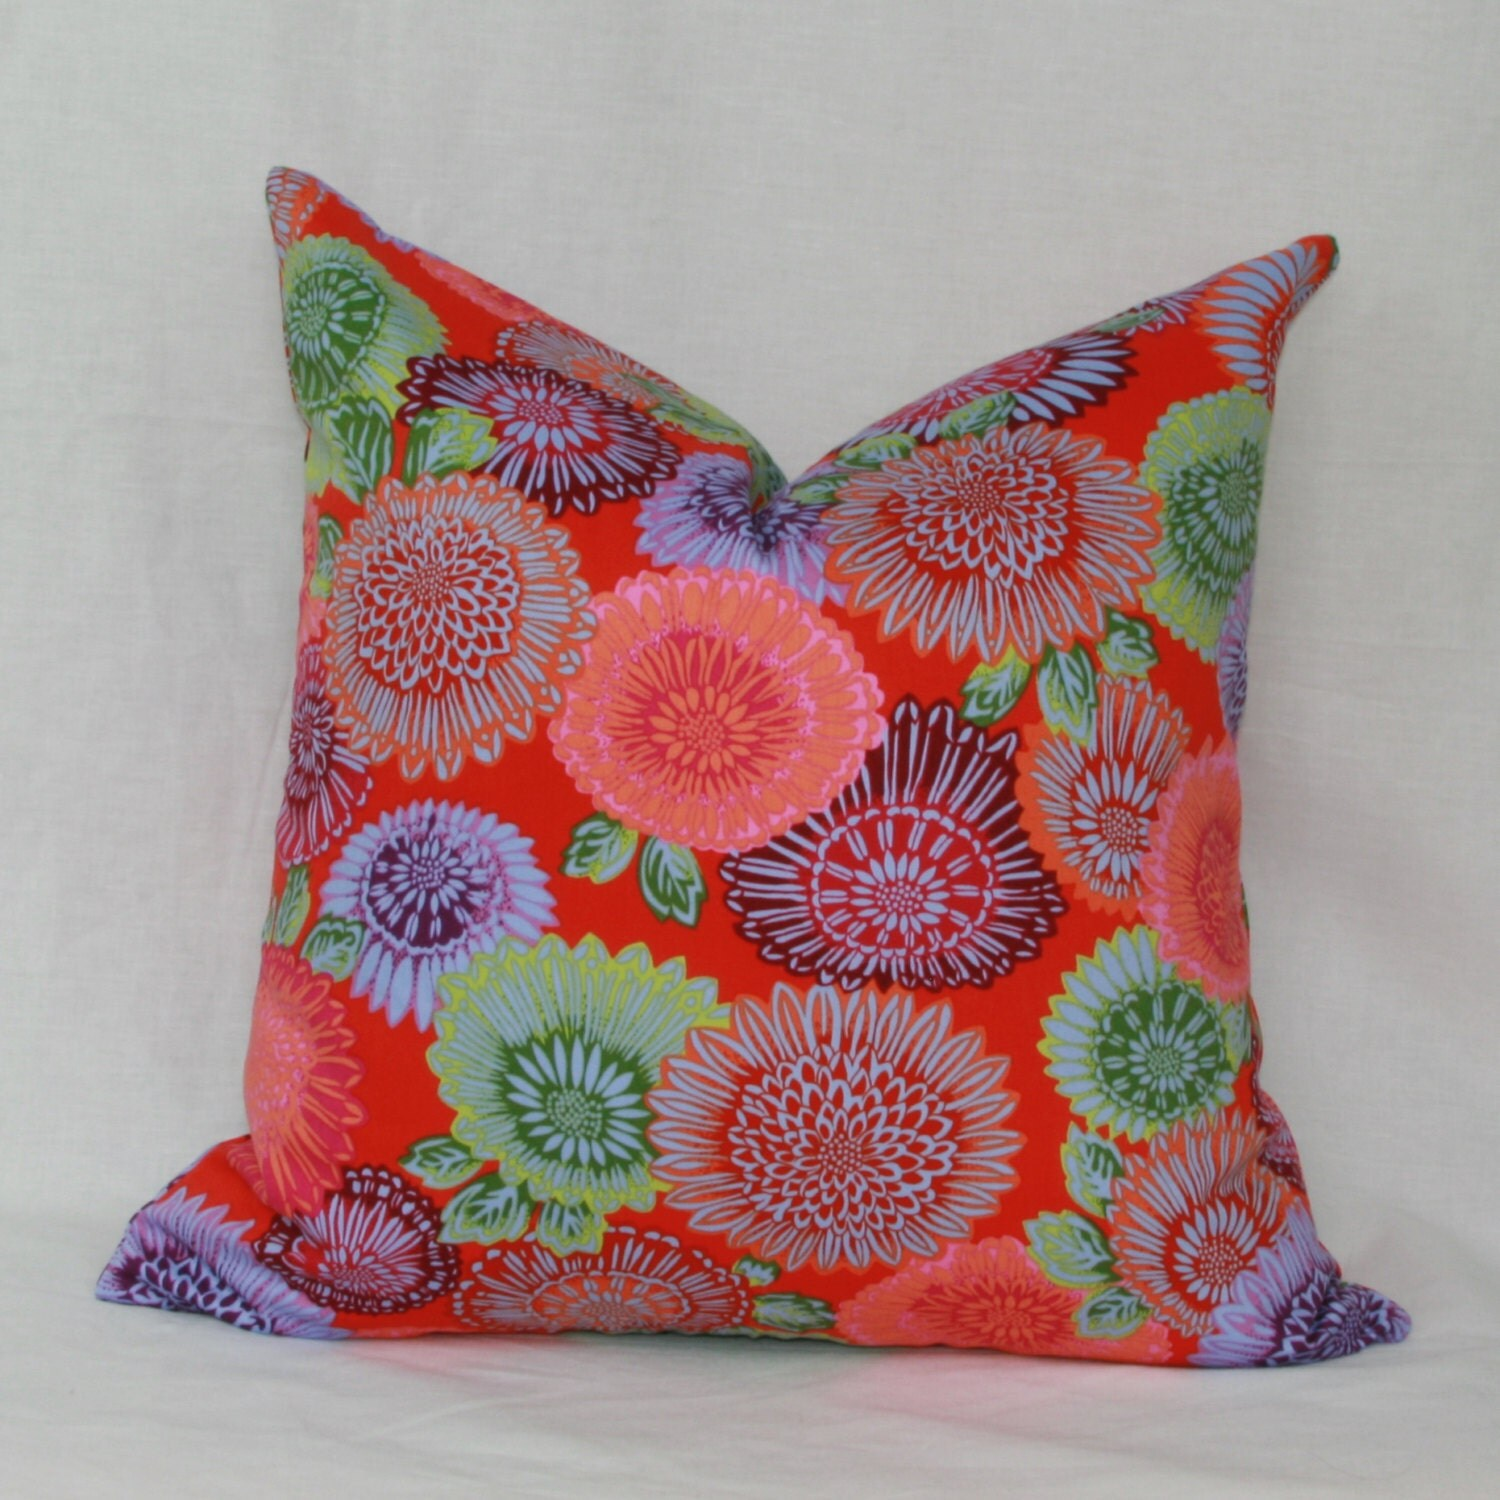 Red purple green decorative throw pillow cover. 18 x